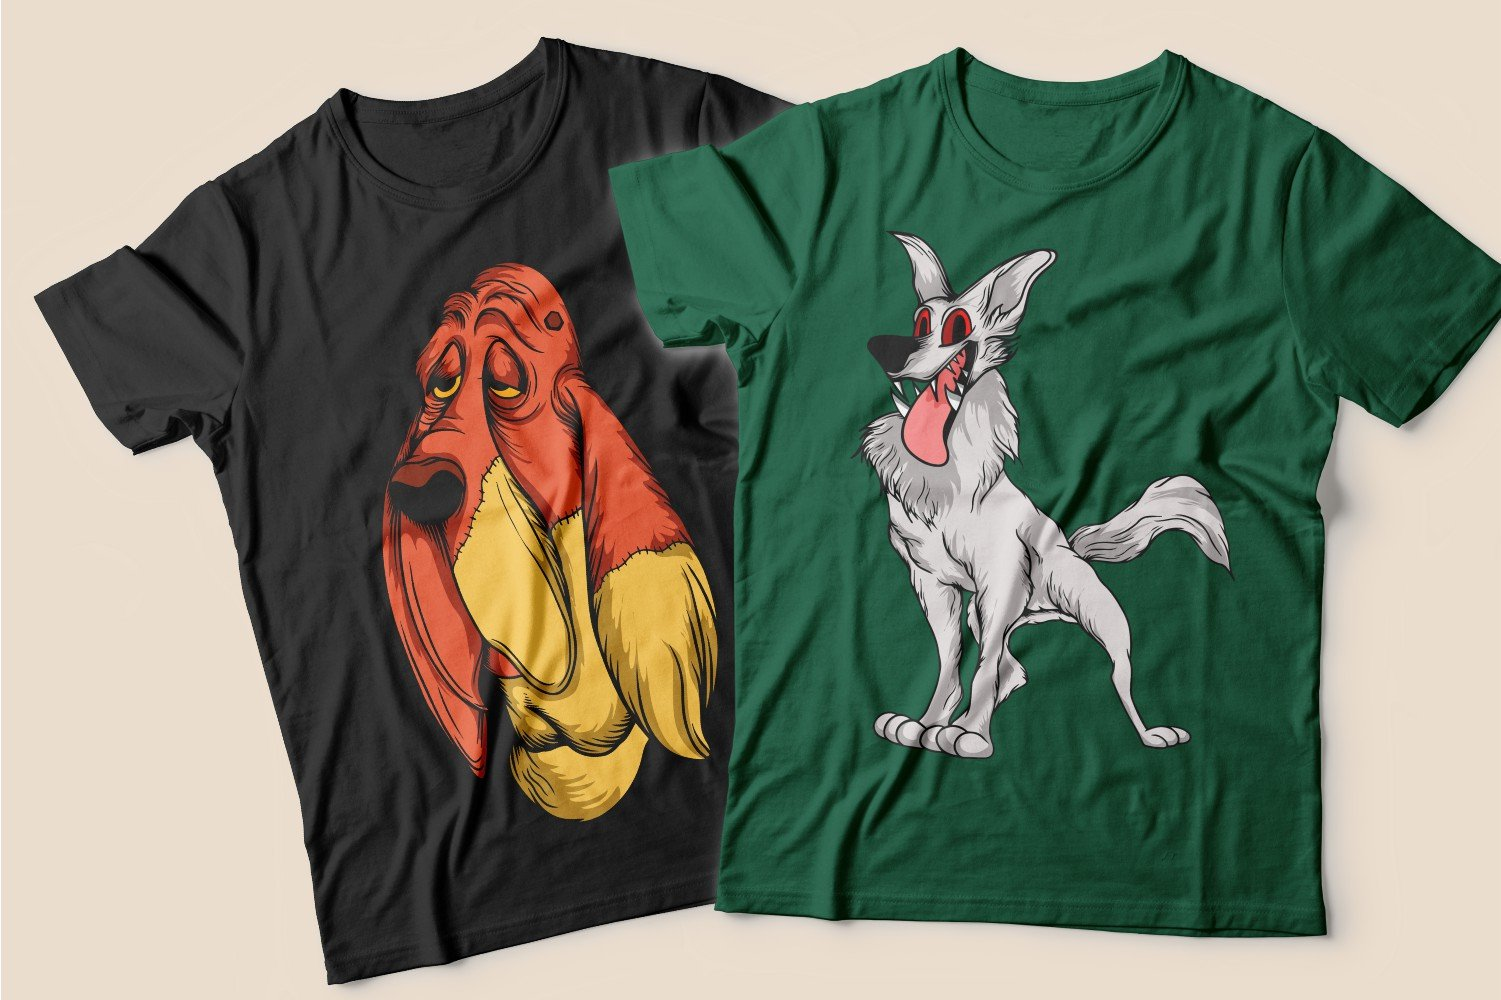 Two T-shirts: one black with a sad two-tone dog and the other green with a gray skinny dog.